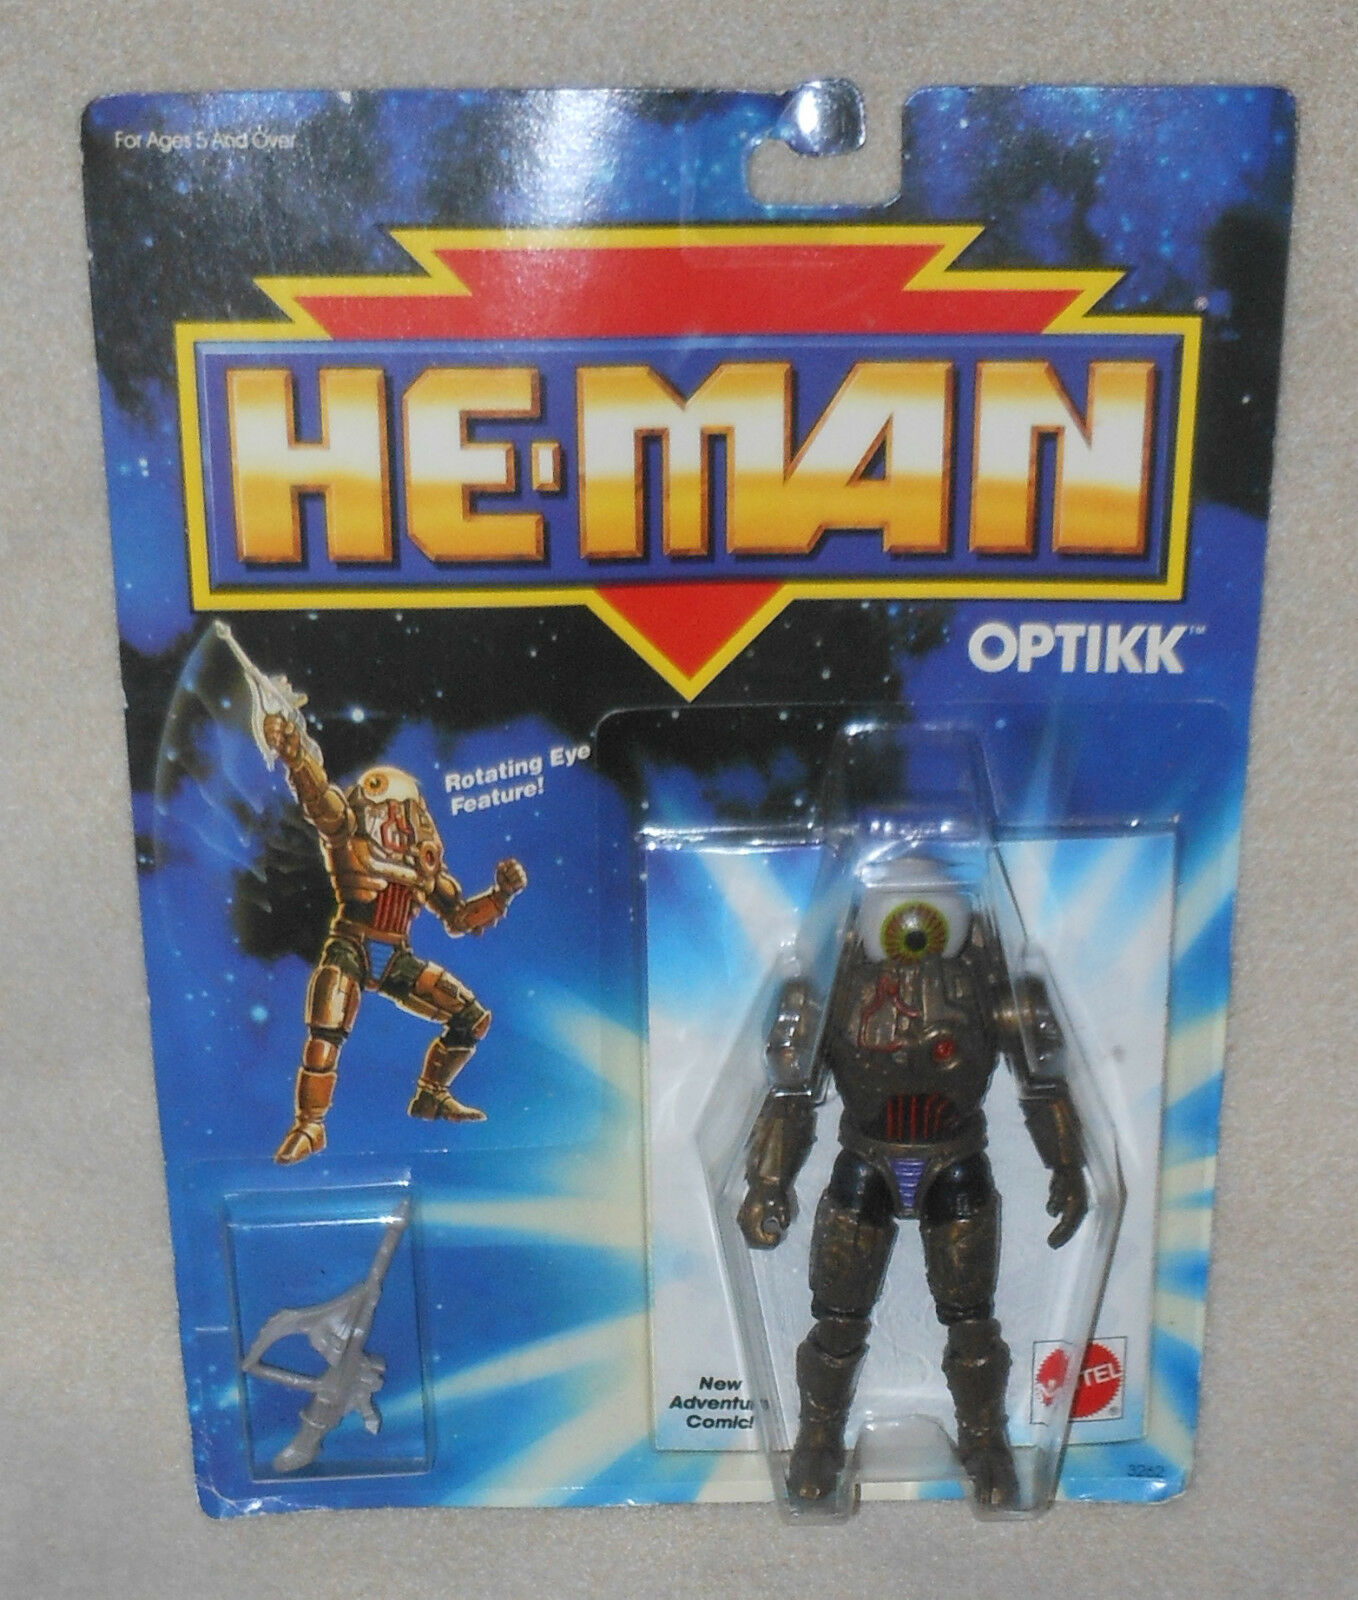 HE-MAN 1989 OPTIKK redating Eye Feature & Comic  Mattel 1989 New in Box